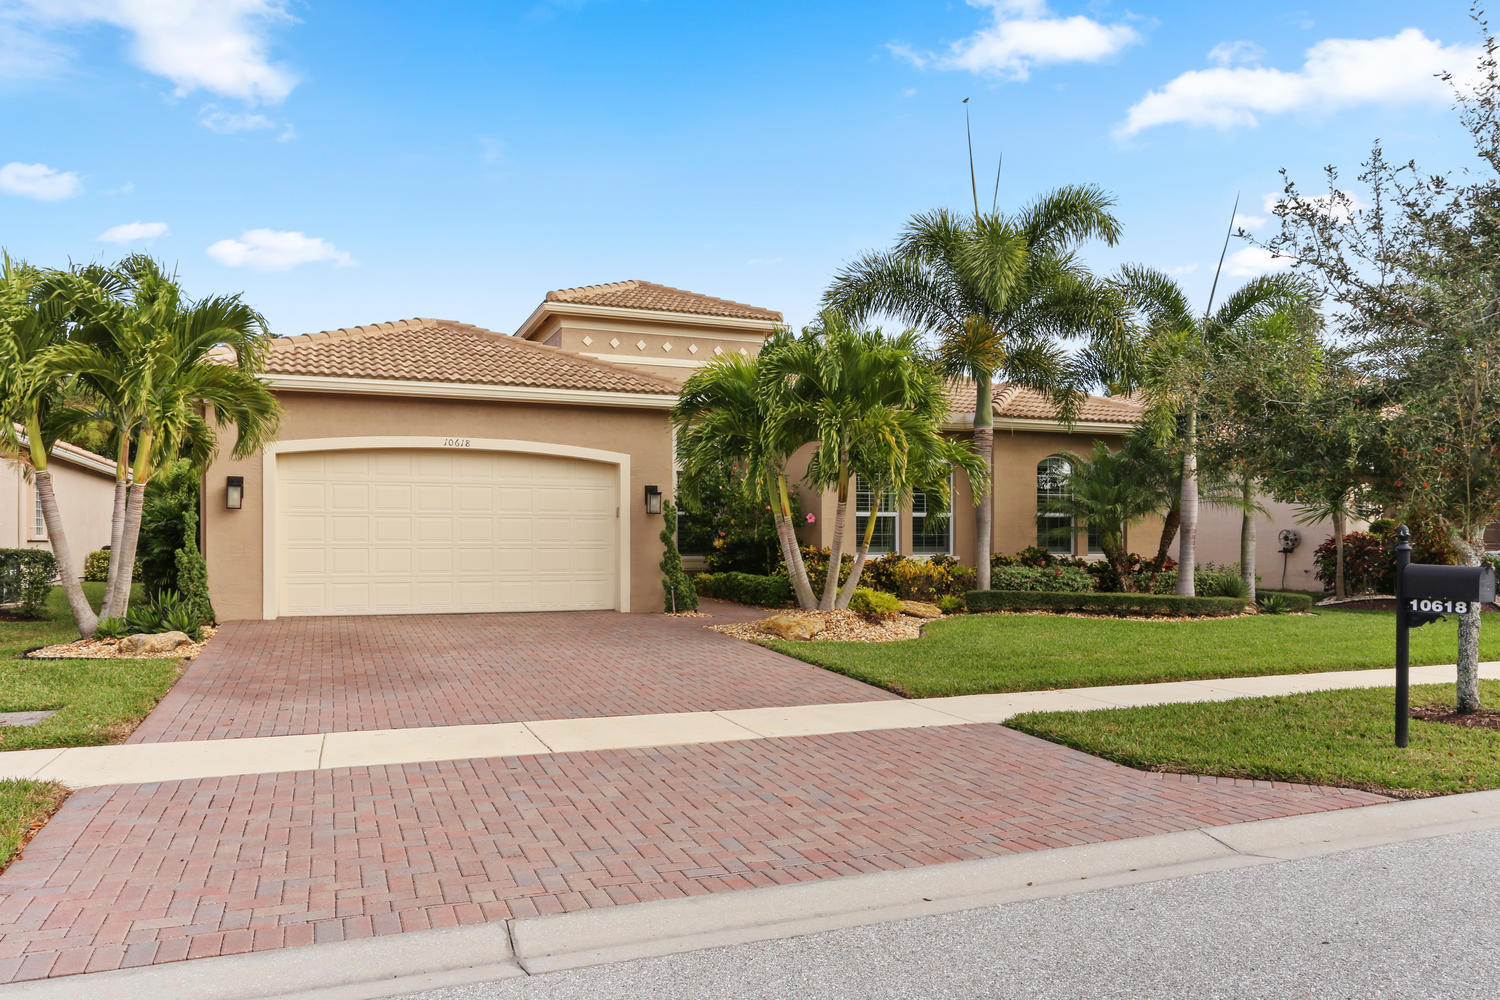 10594 Whitewind Circle Boynton Beach 33473 - photo